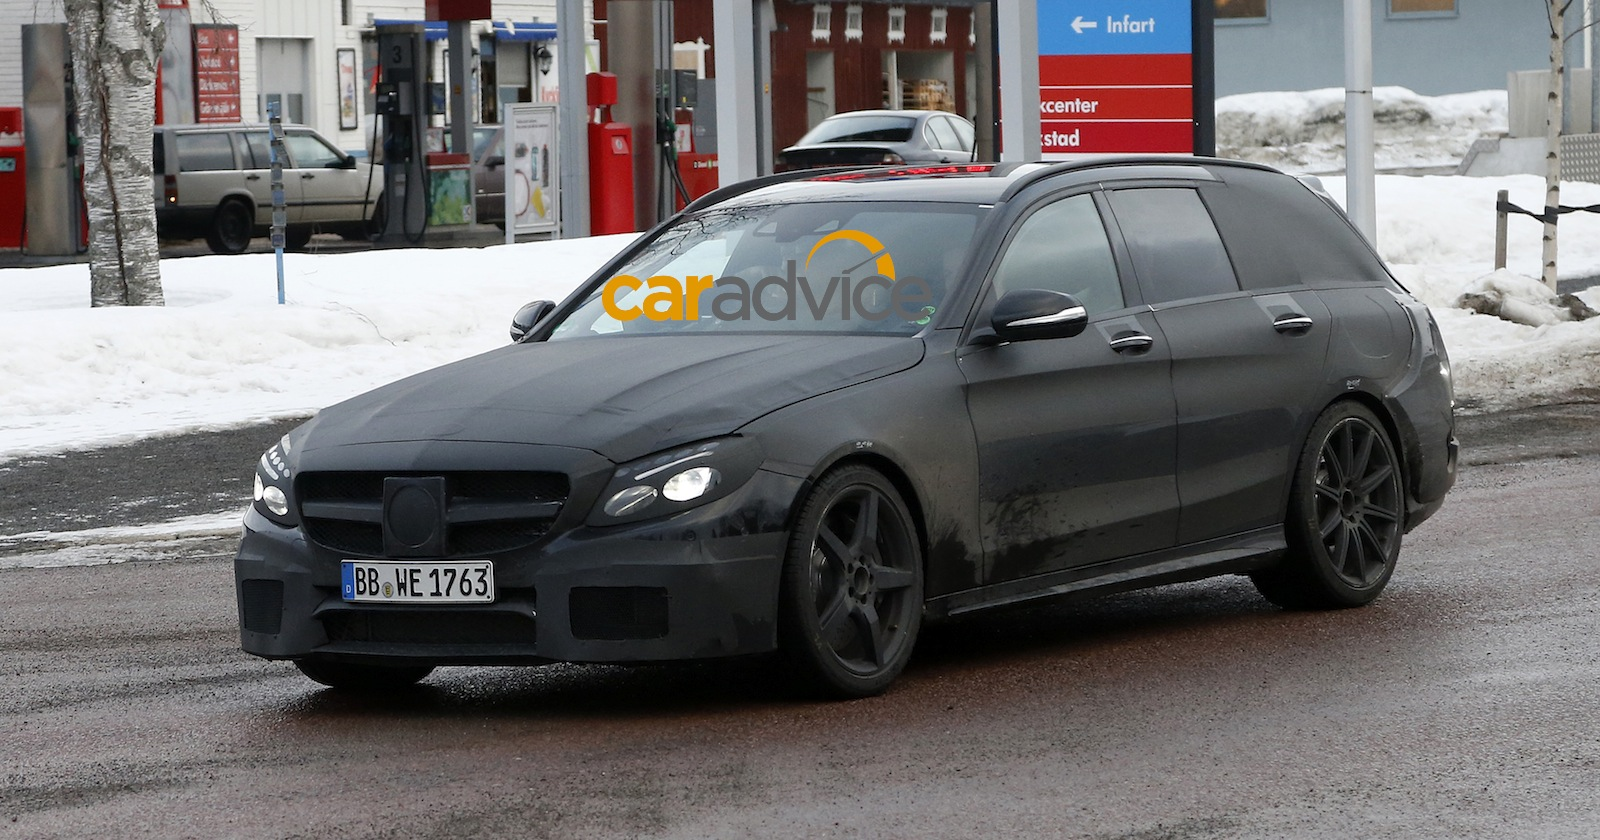 2015 mercedes benz c63 amg estate spied photos 1 of 13 for 2015 amg c63 mercedes benz